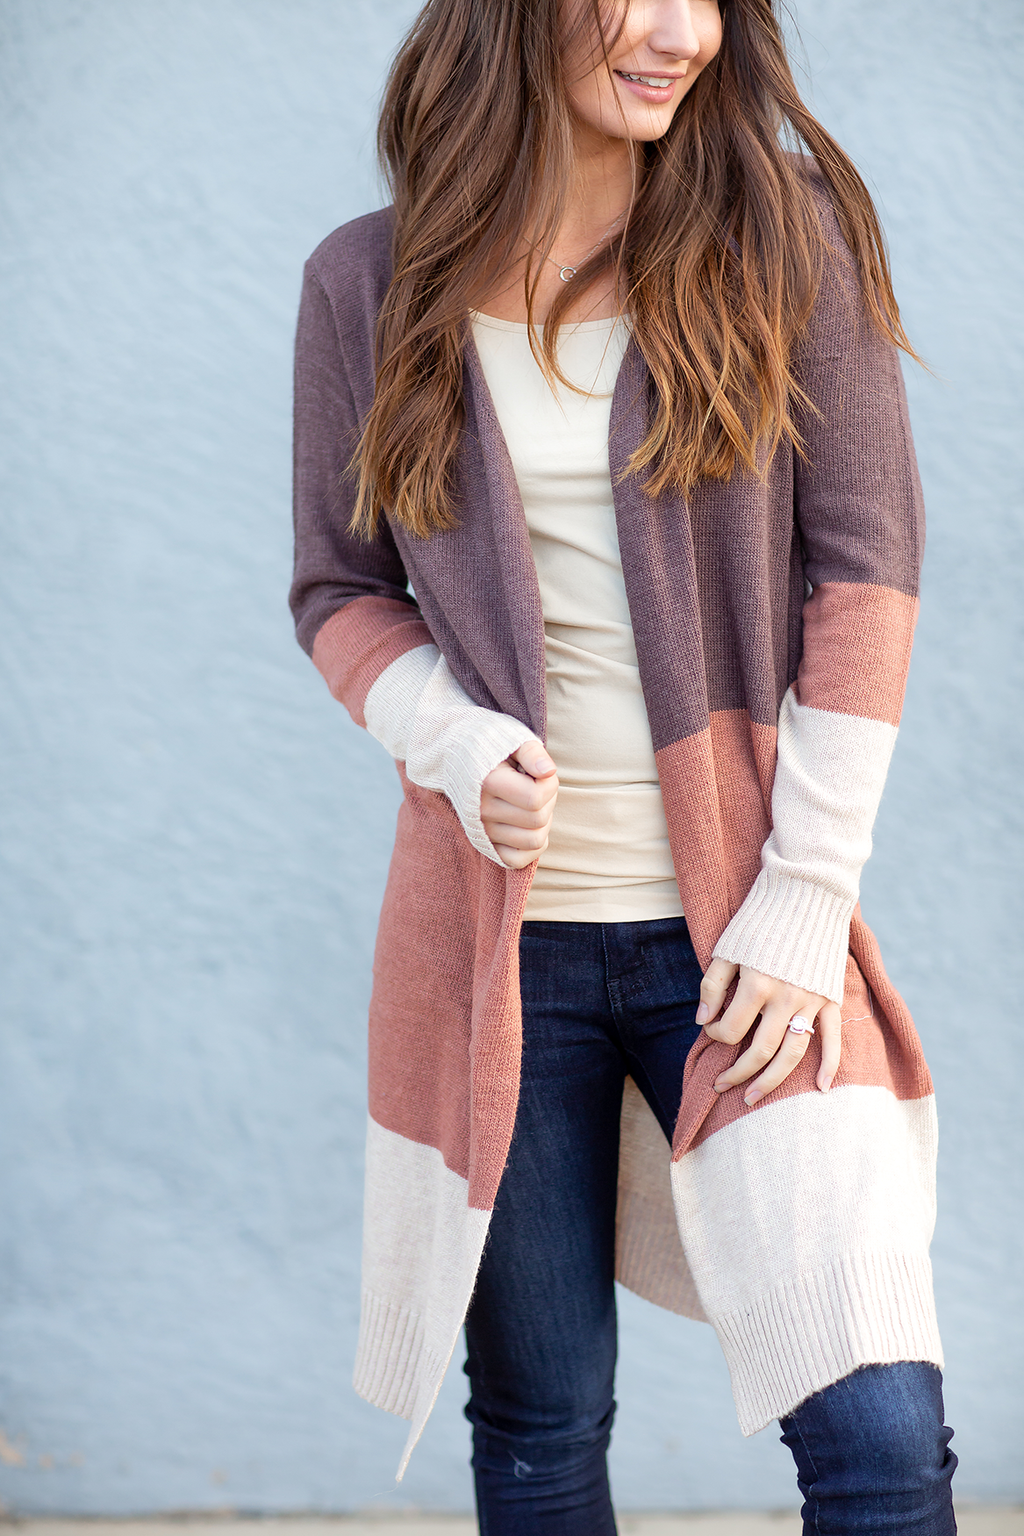 Happy Heart Color Block Cashmere Cardigan in Plum, Mauve and Cream